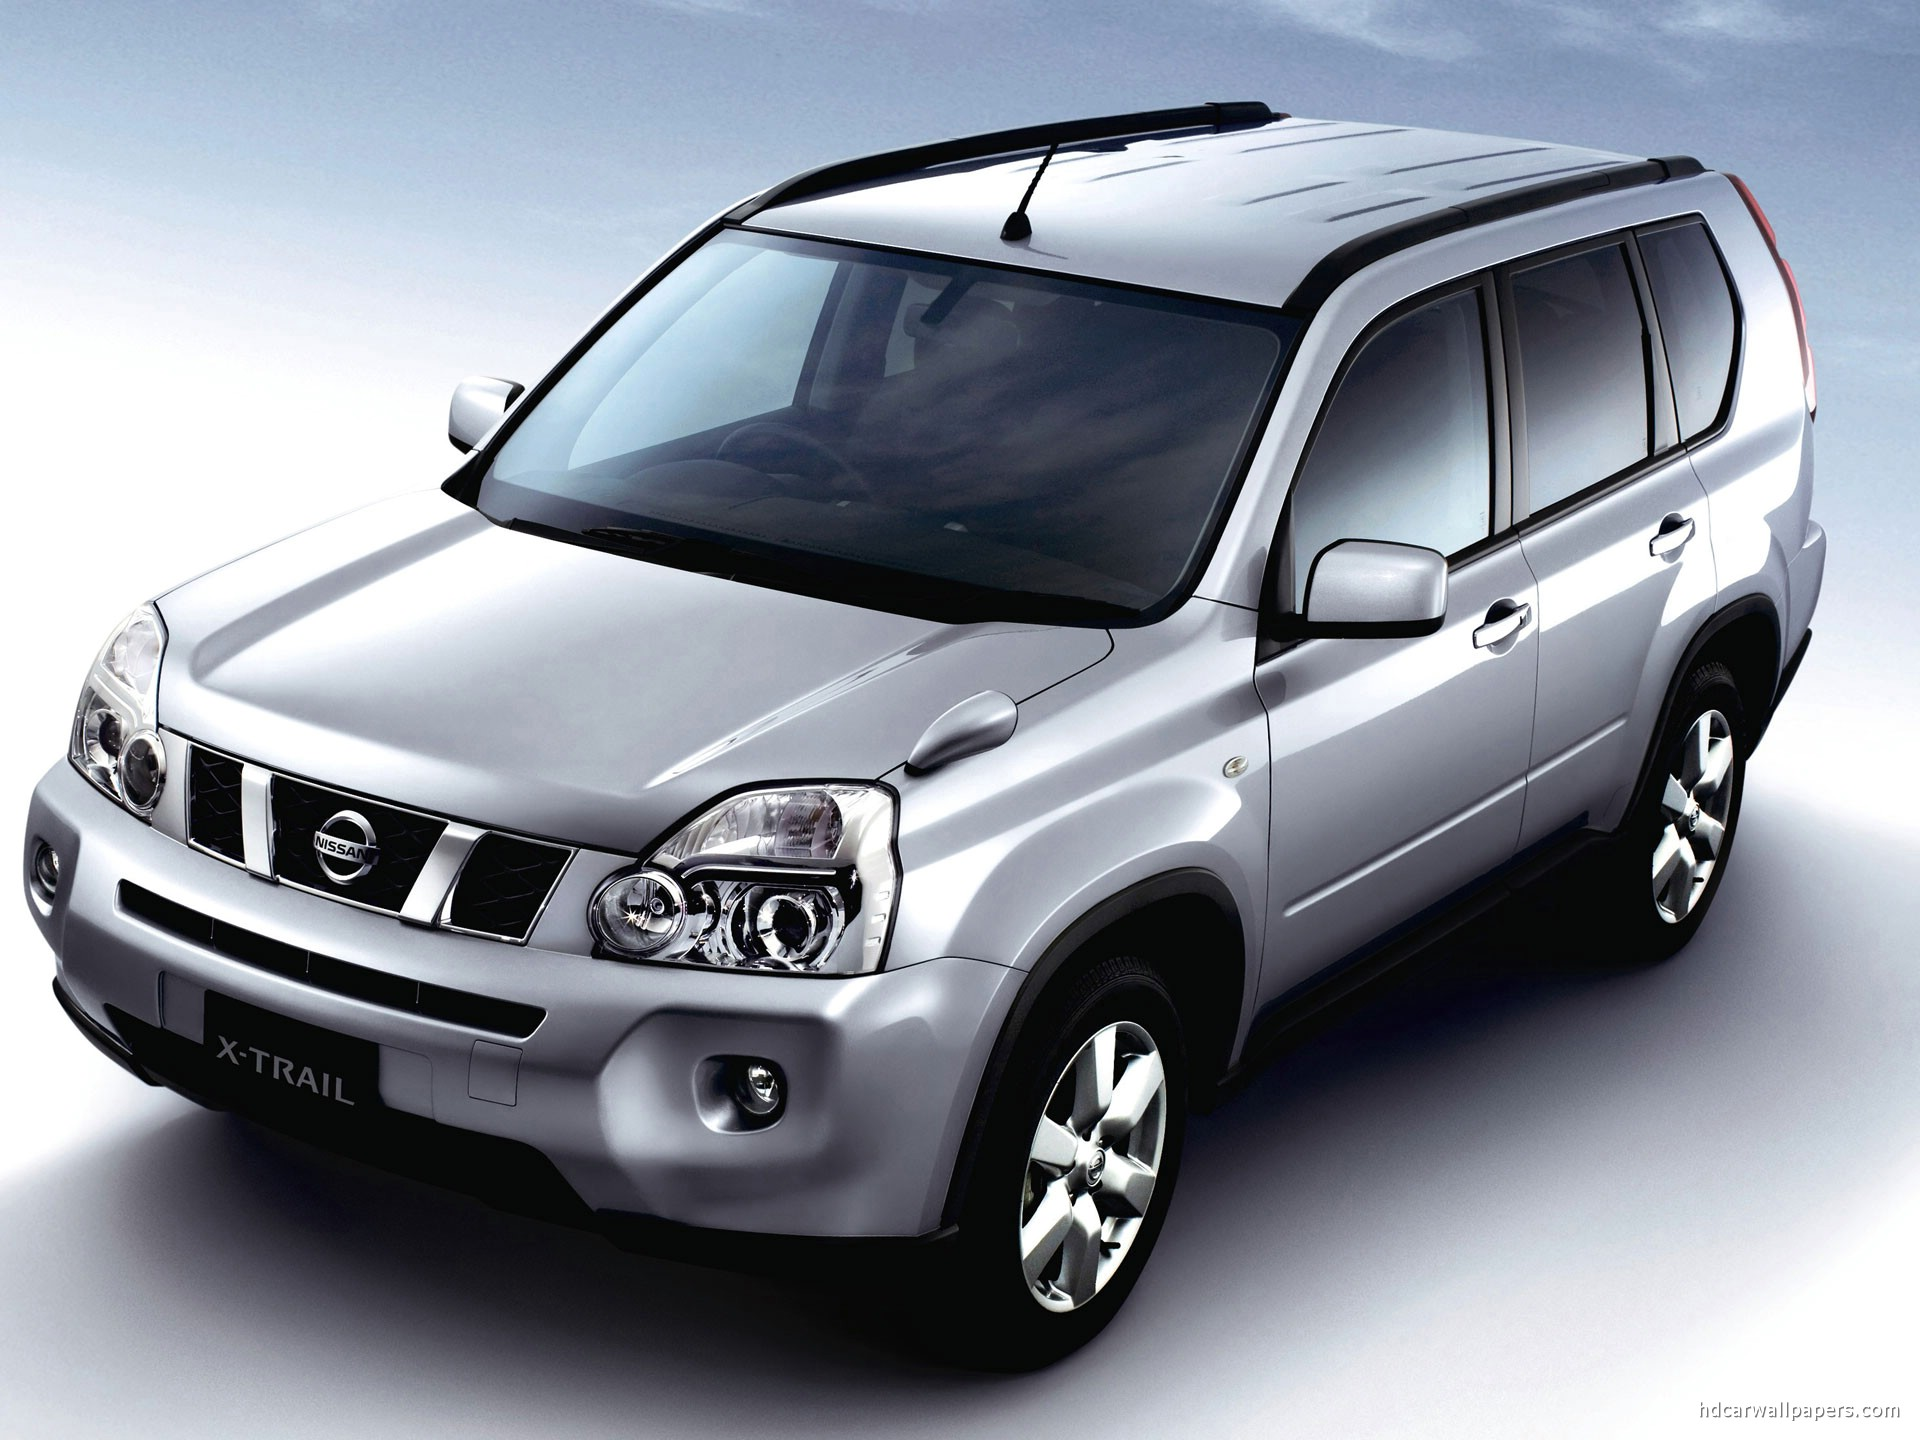 2010 nissan x trail 2 pictures information and specs auto. Black Bedroom Furniture Sets. Home Design Ideas